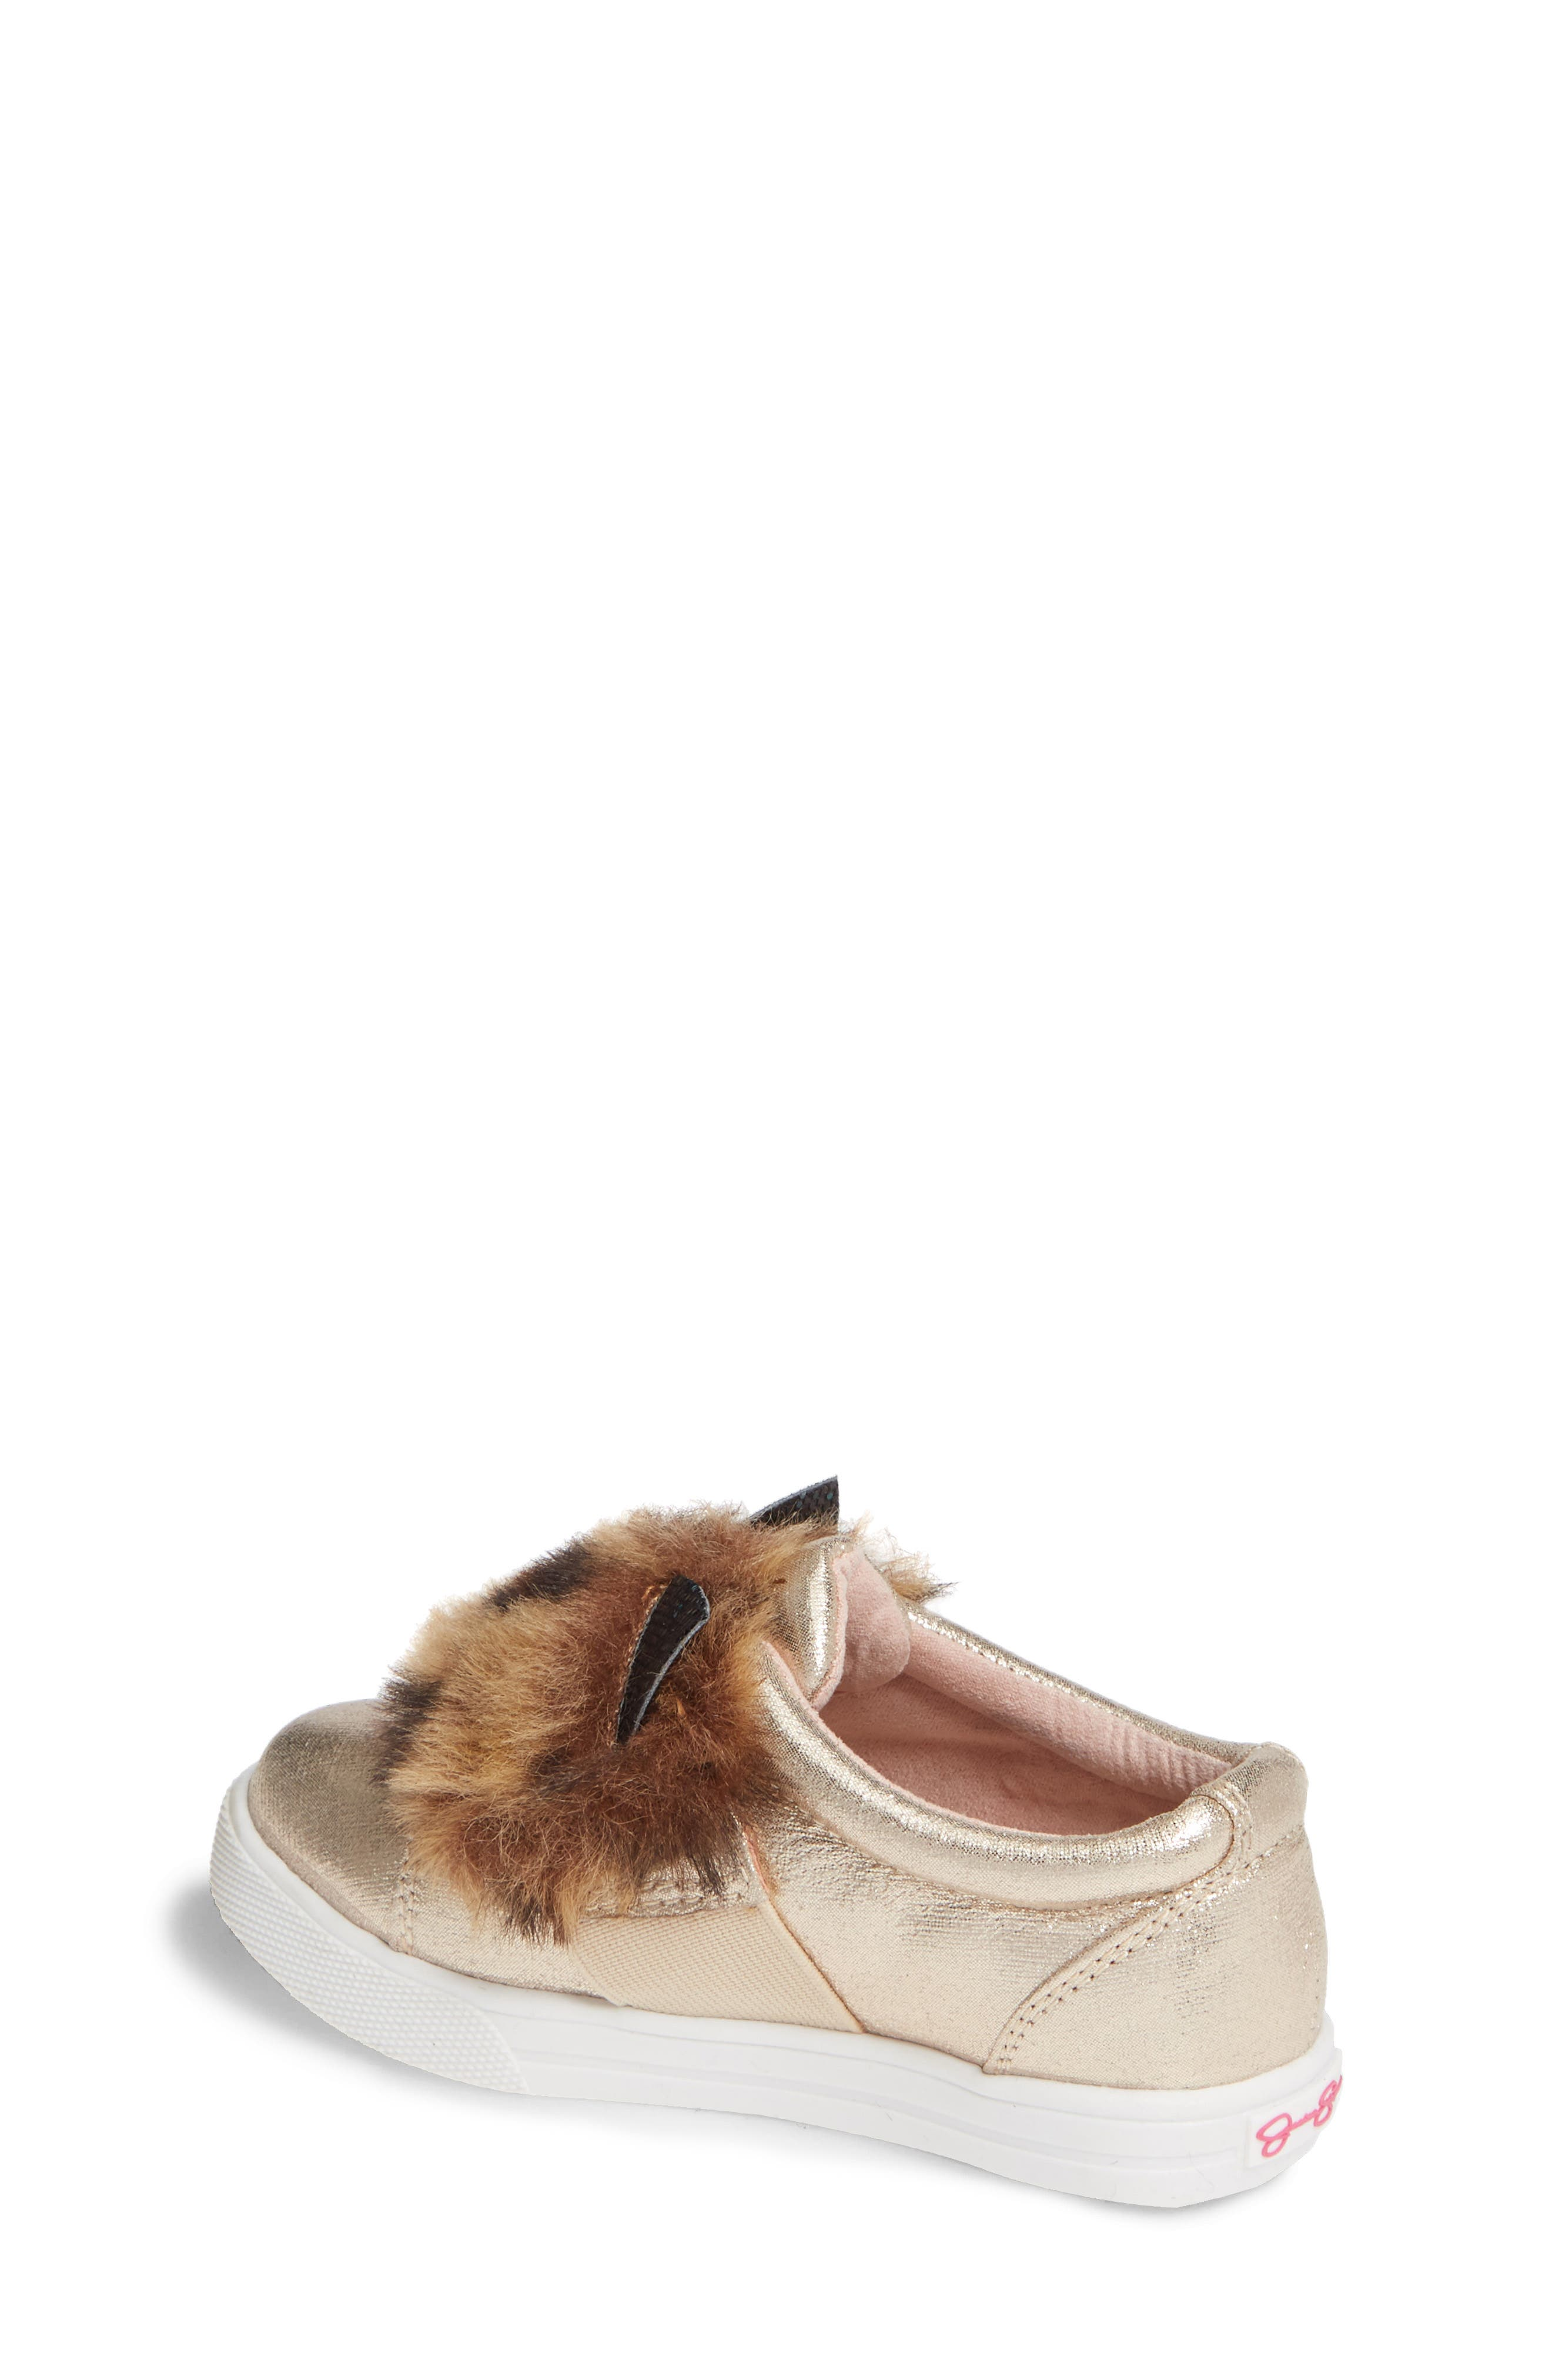 Faux Fur Slip-On Metallic Sneaker,                             Alternate thumbnail 2, color,                             GOLDEN METALLIC